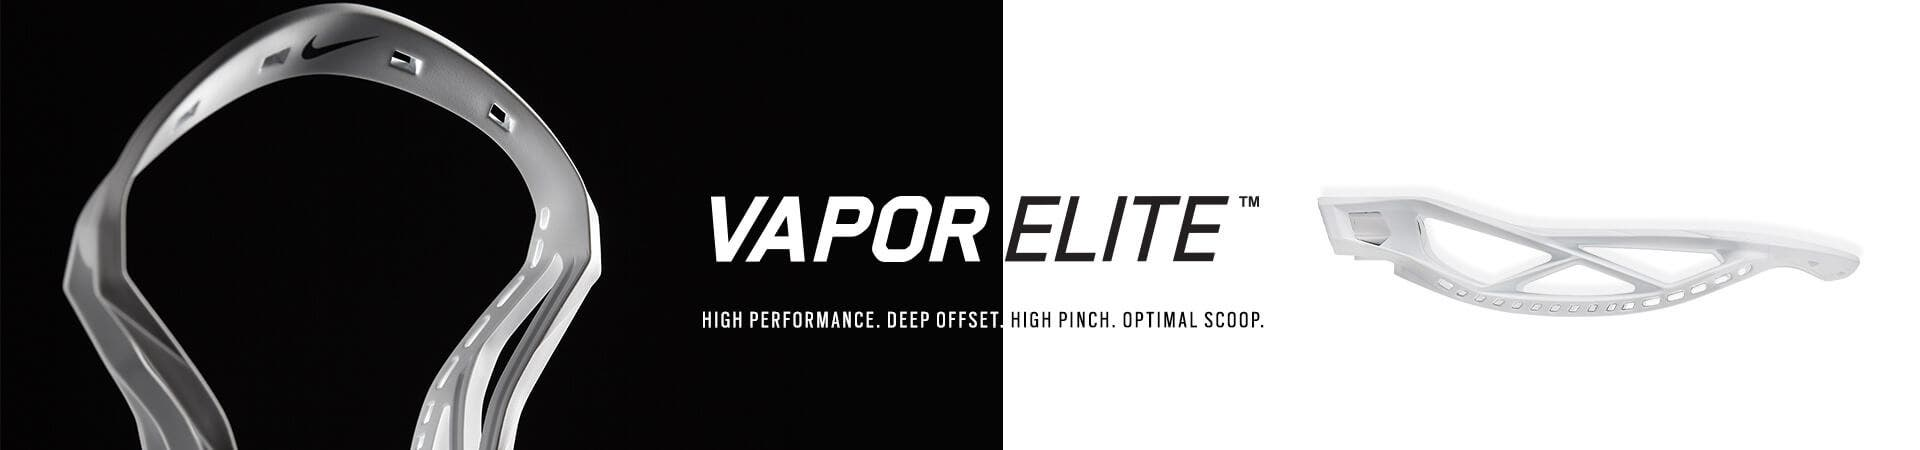 Nike Vapor Elite - DESKTOP